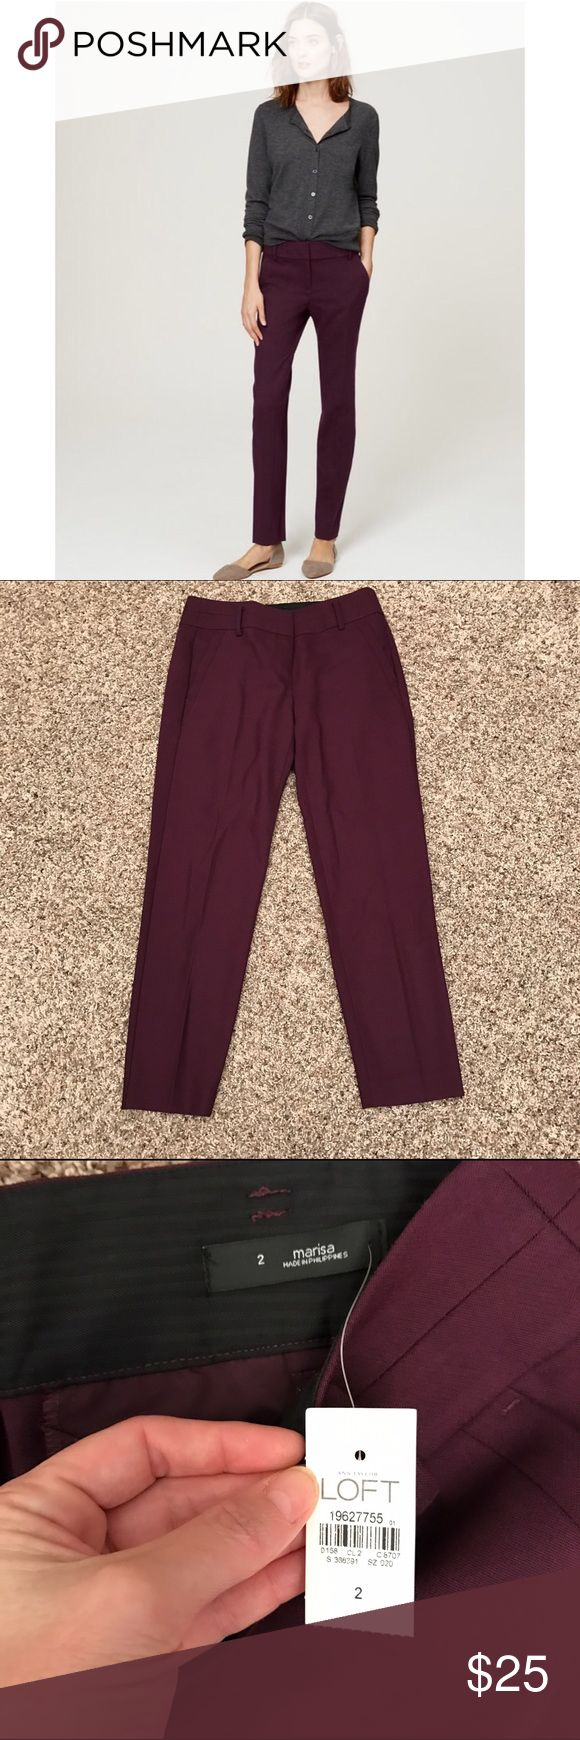 "LOFT Pencil Pants Marisa Fit NWT sz 2 Sold out online. Nwt. Inseam approx 28.25"". LOFT Pants Ankle & Cropped"